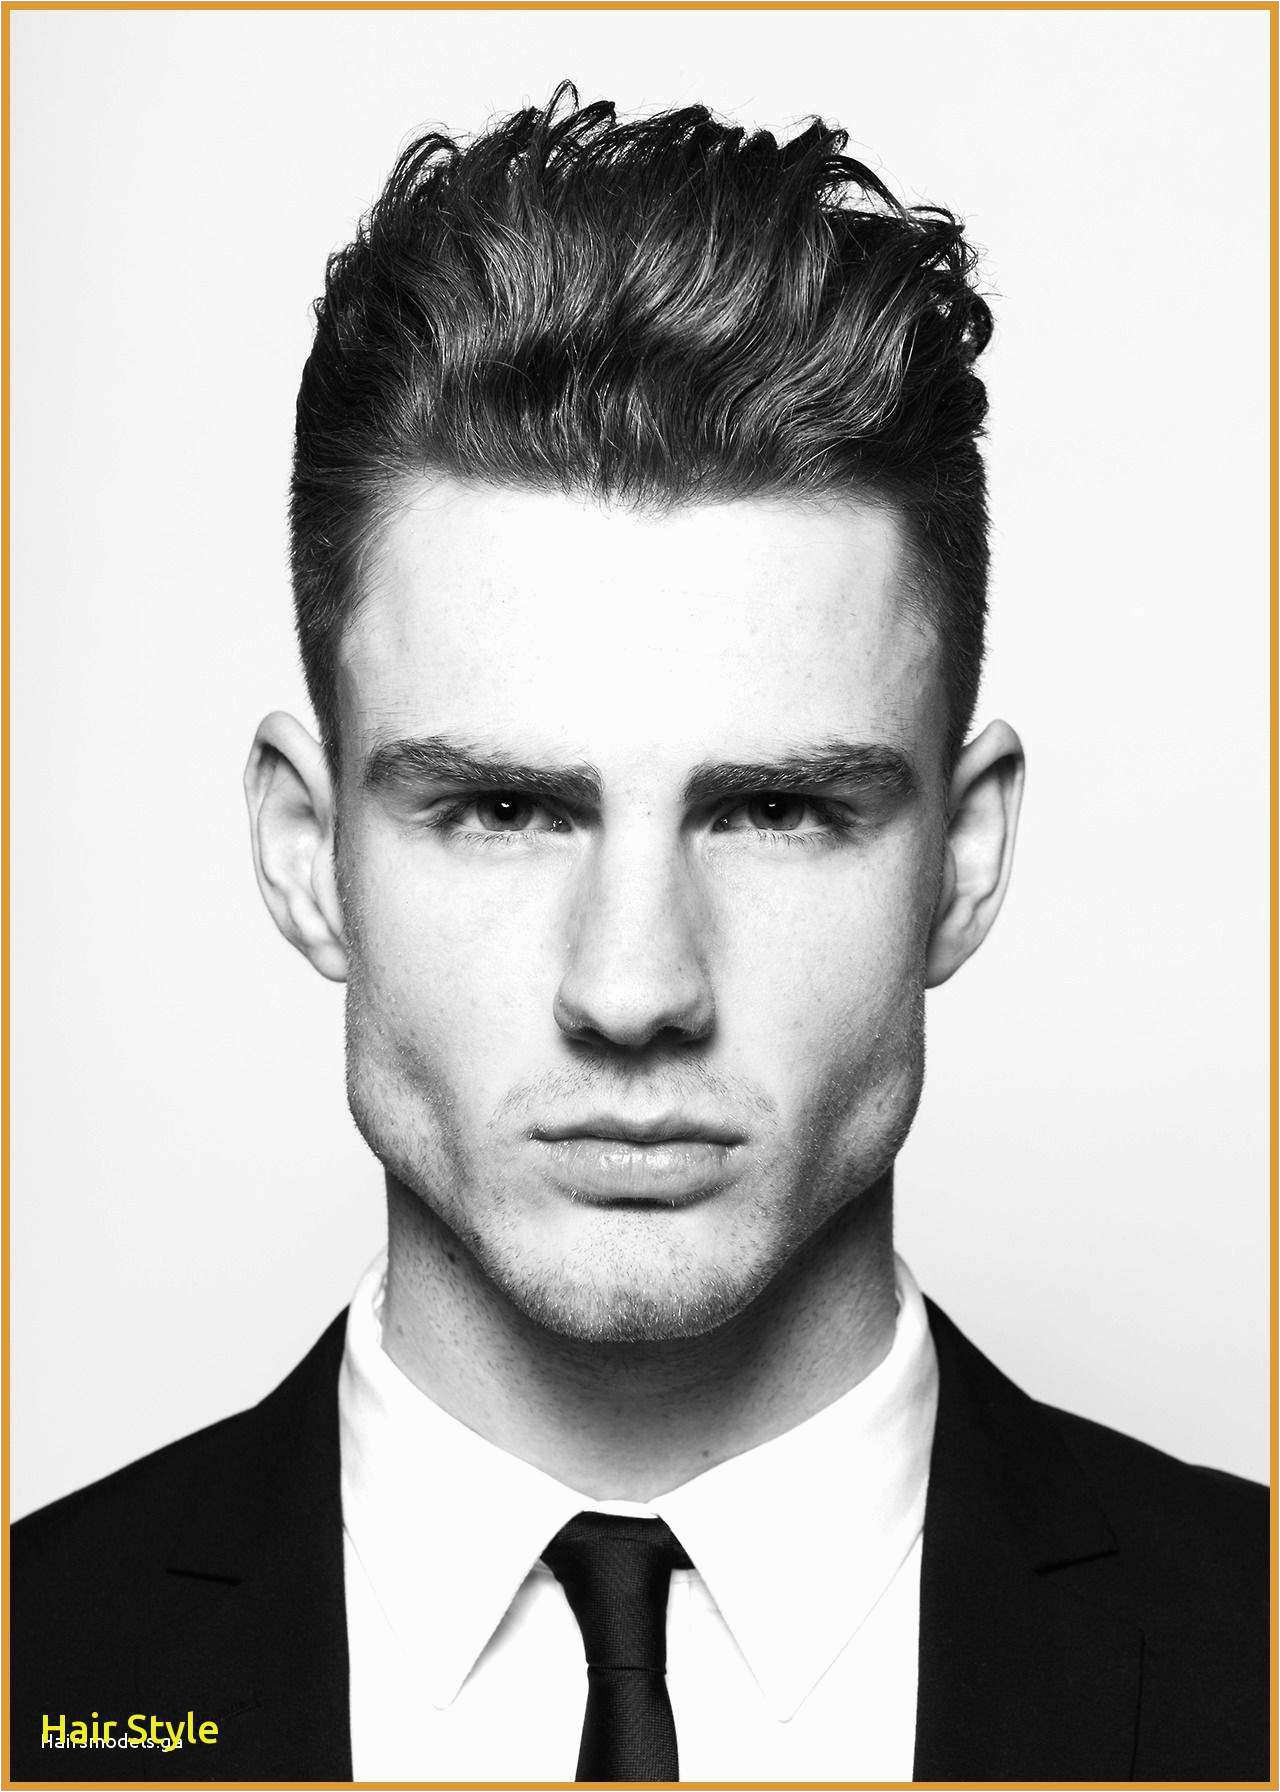 Awesome hairstyles for 2018 fall best popular mens haircuts 2018 beautiful hairstyles men 0d Plan of